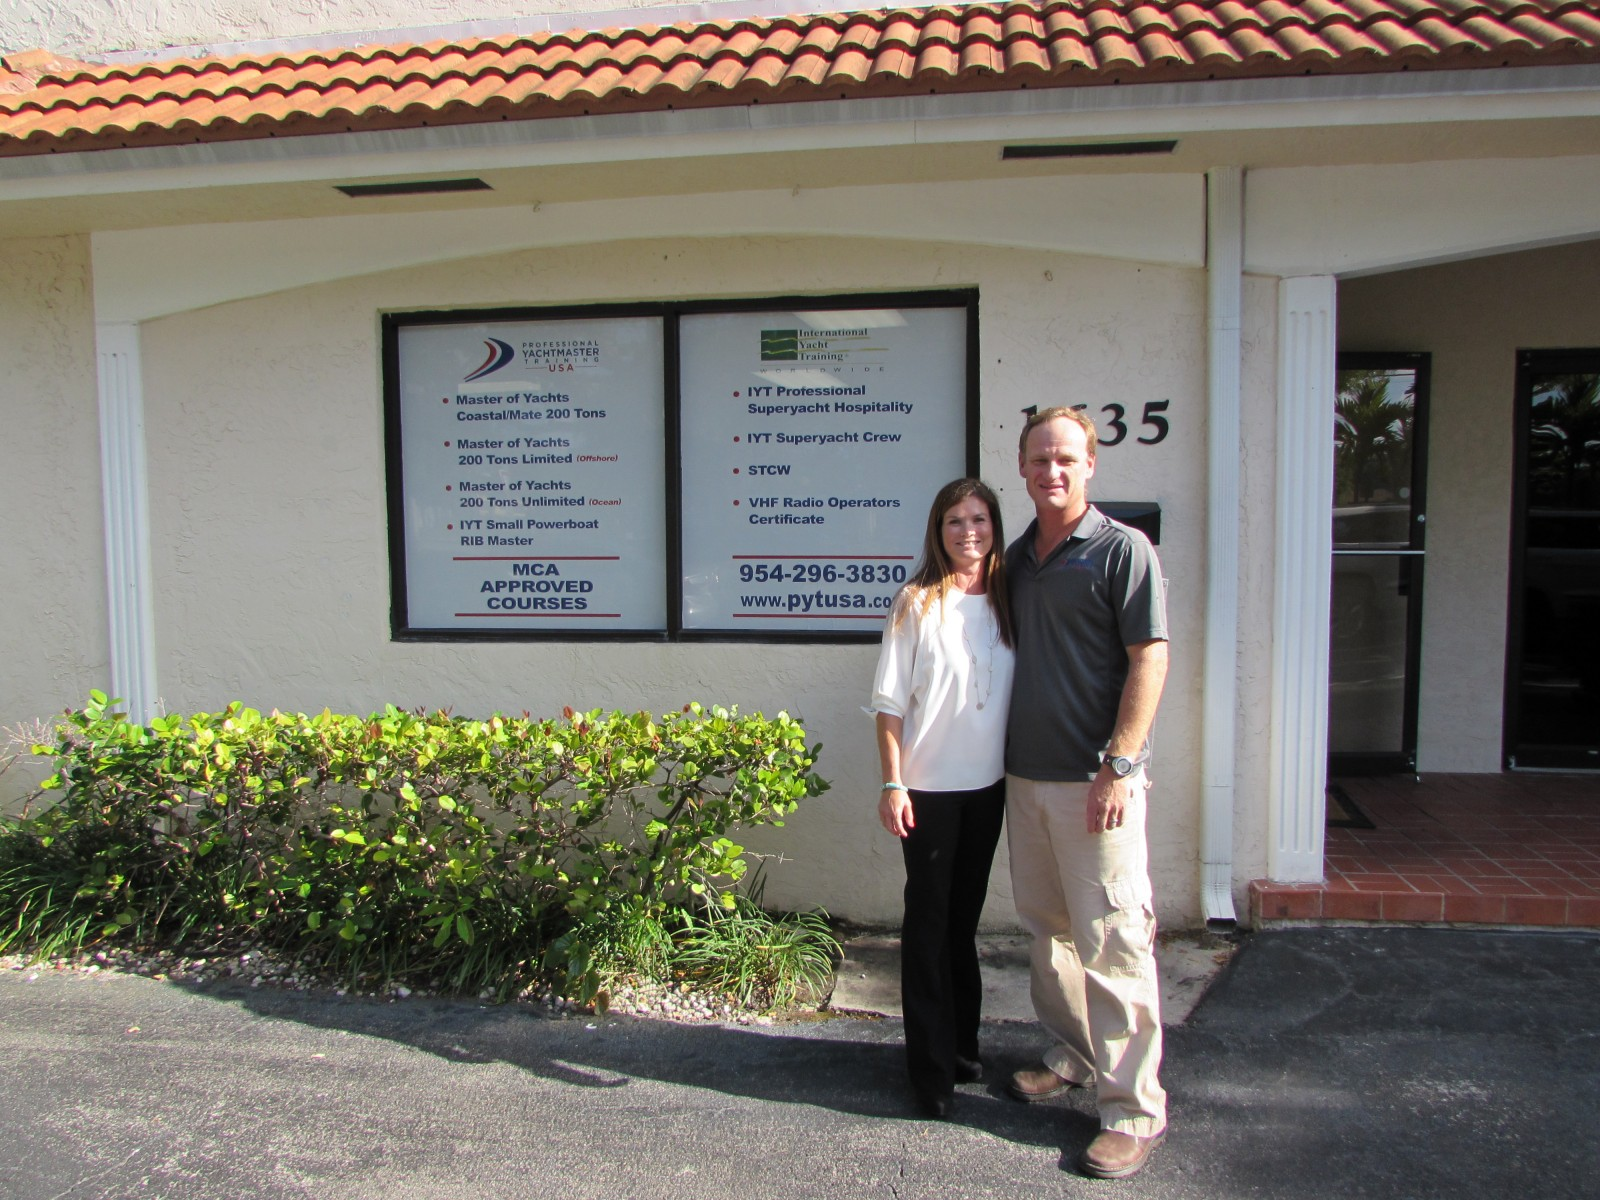 Tracy and Mark  Schwegman of Professional Yachtmaster Training USA opened a new office in Ft. Lauderdale in April. PHOTO BY MIKE PRICE